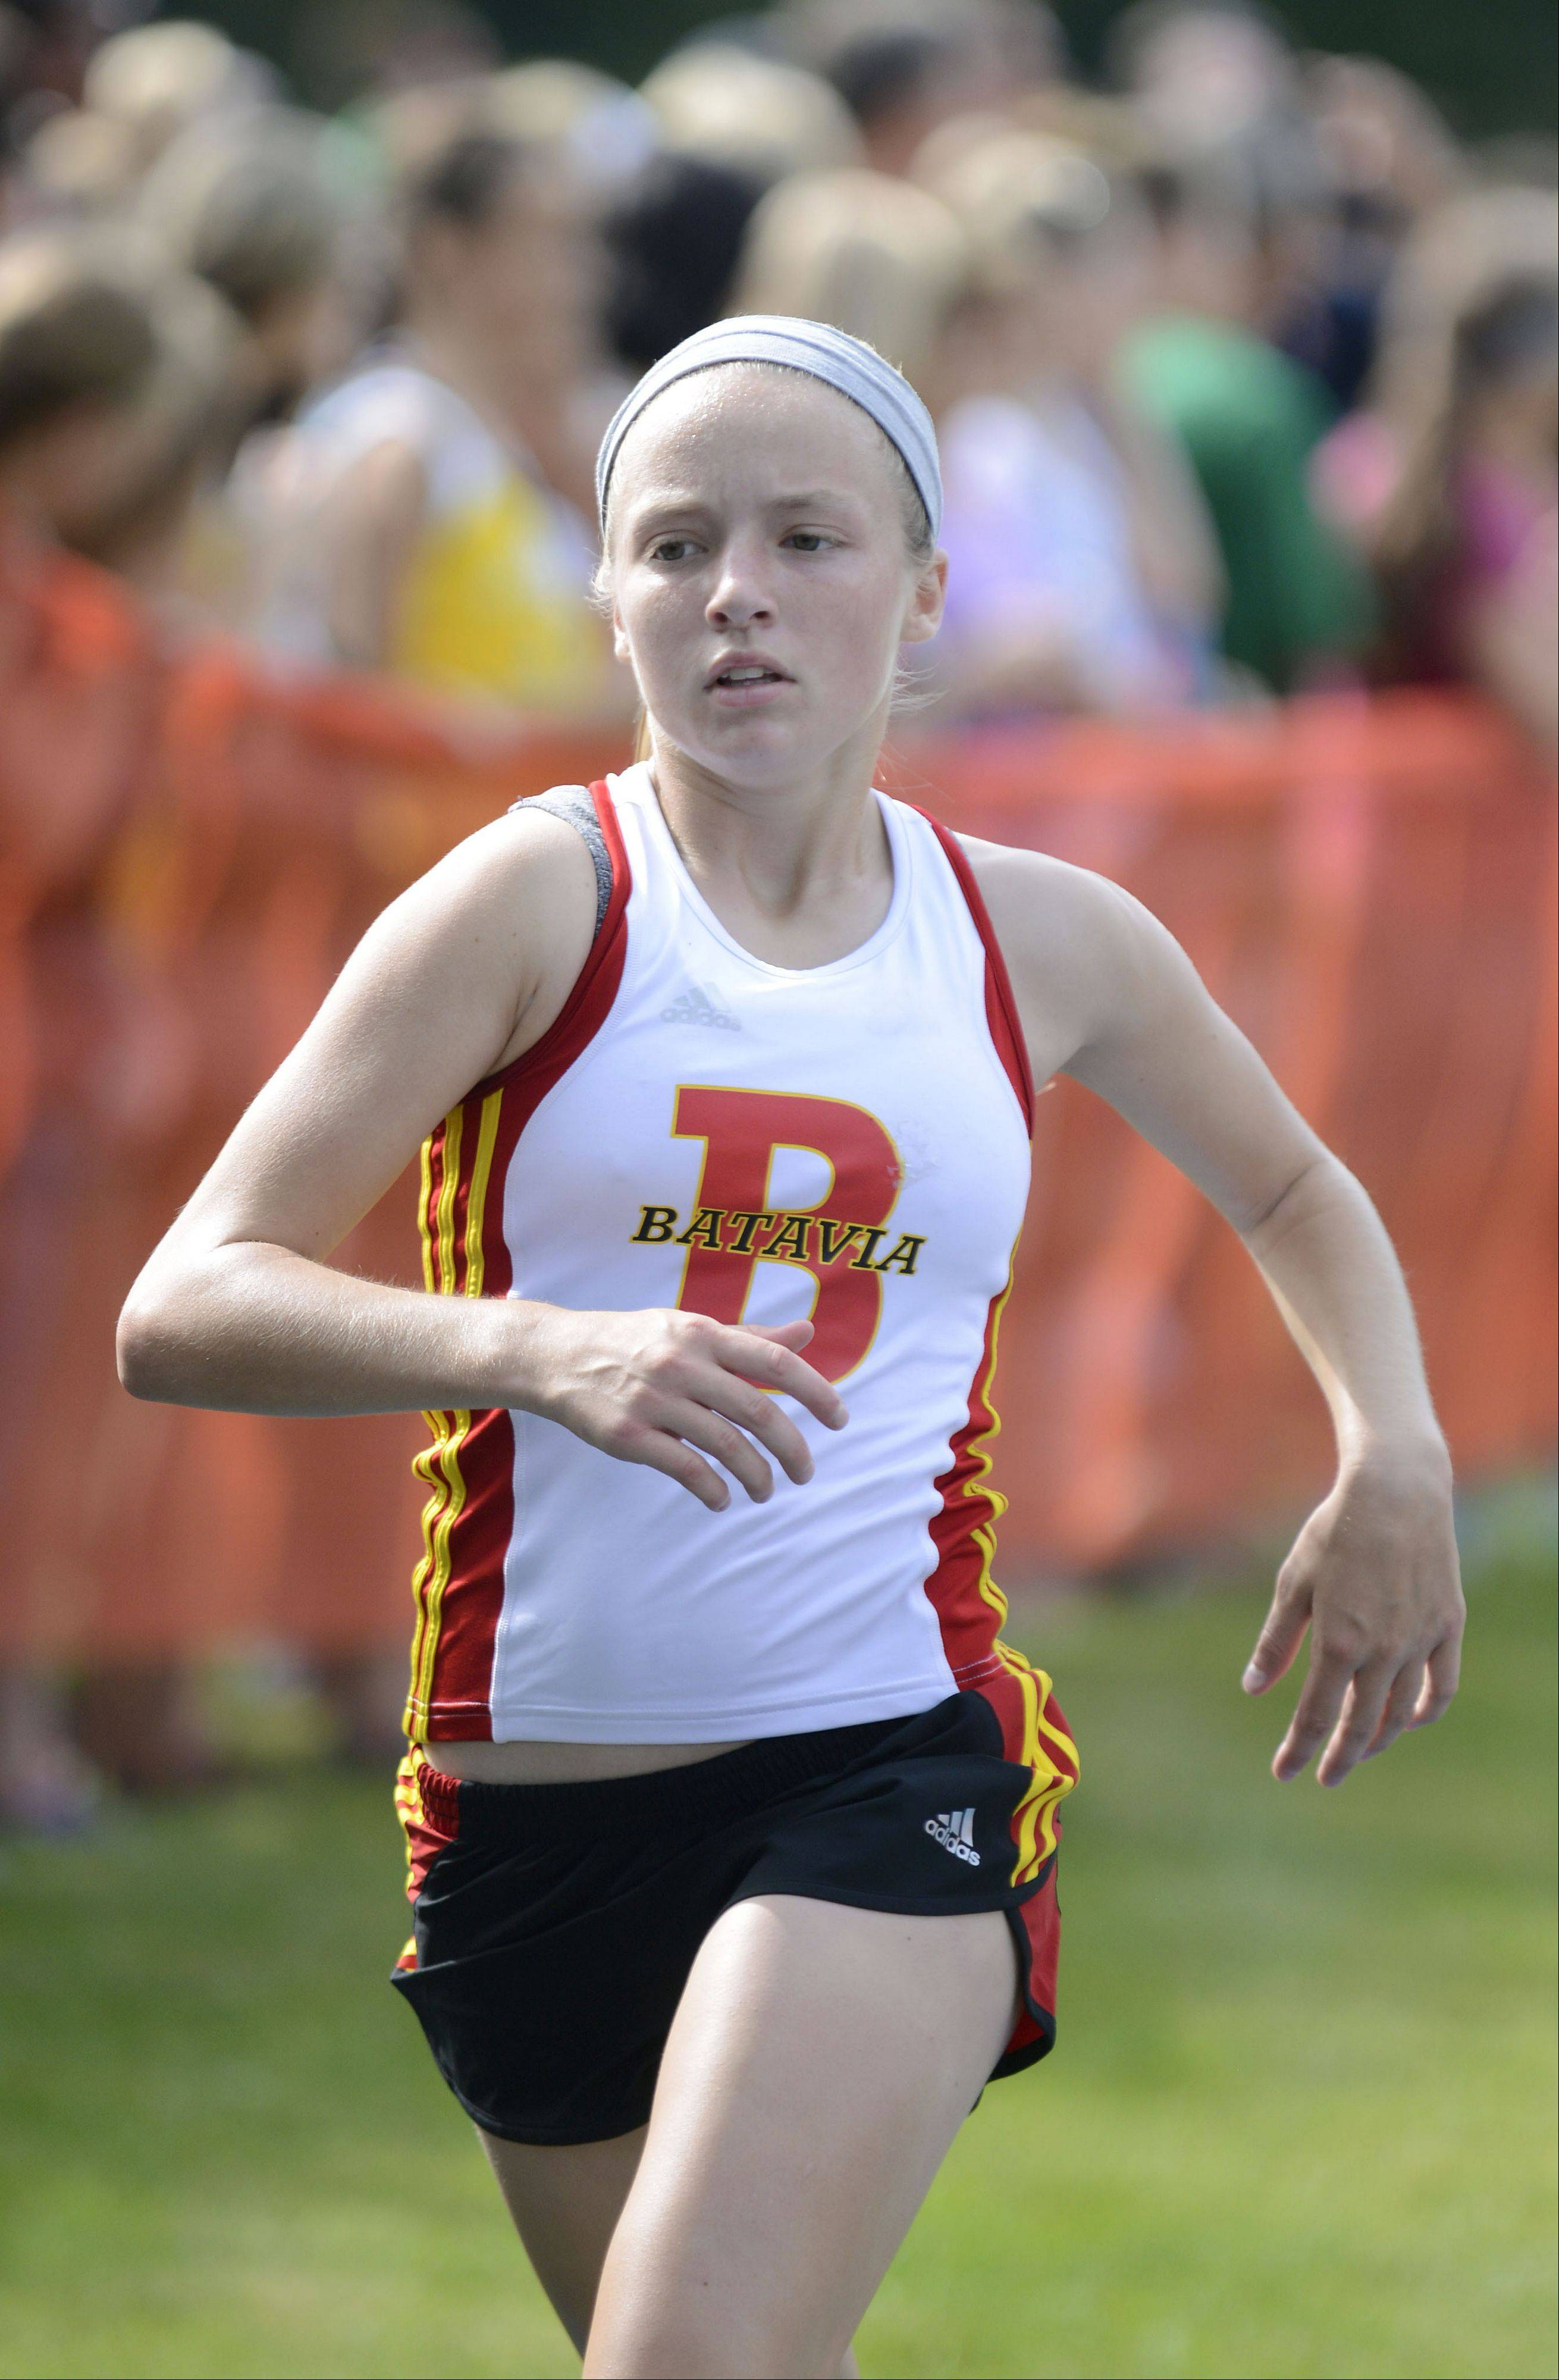 Batavia�s Dakota Roman nears the finish line in the meet at Leroy Oakes Forest Preserve in St. Charles on Saturday, September 7.